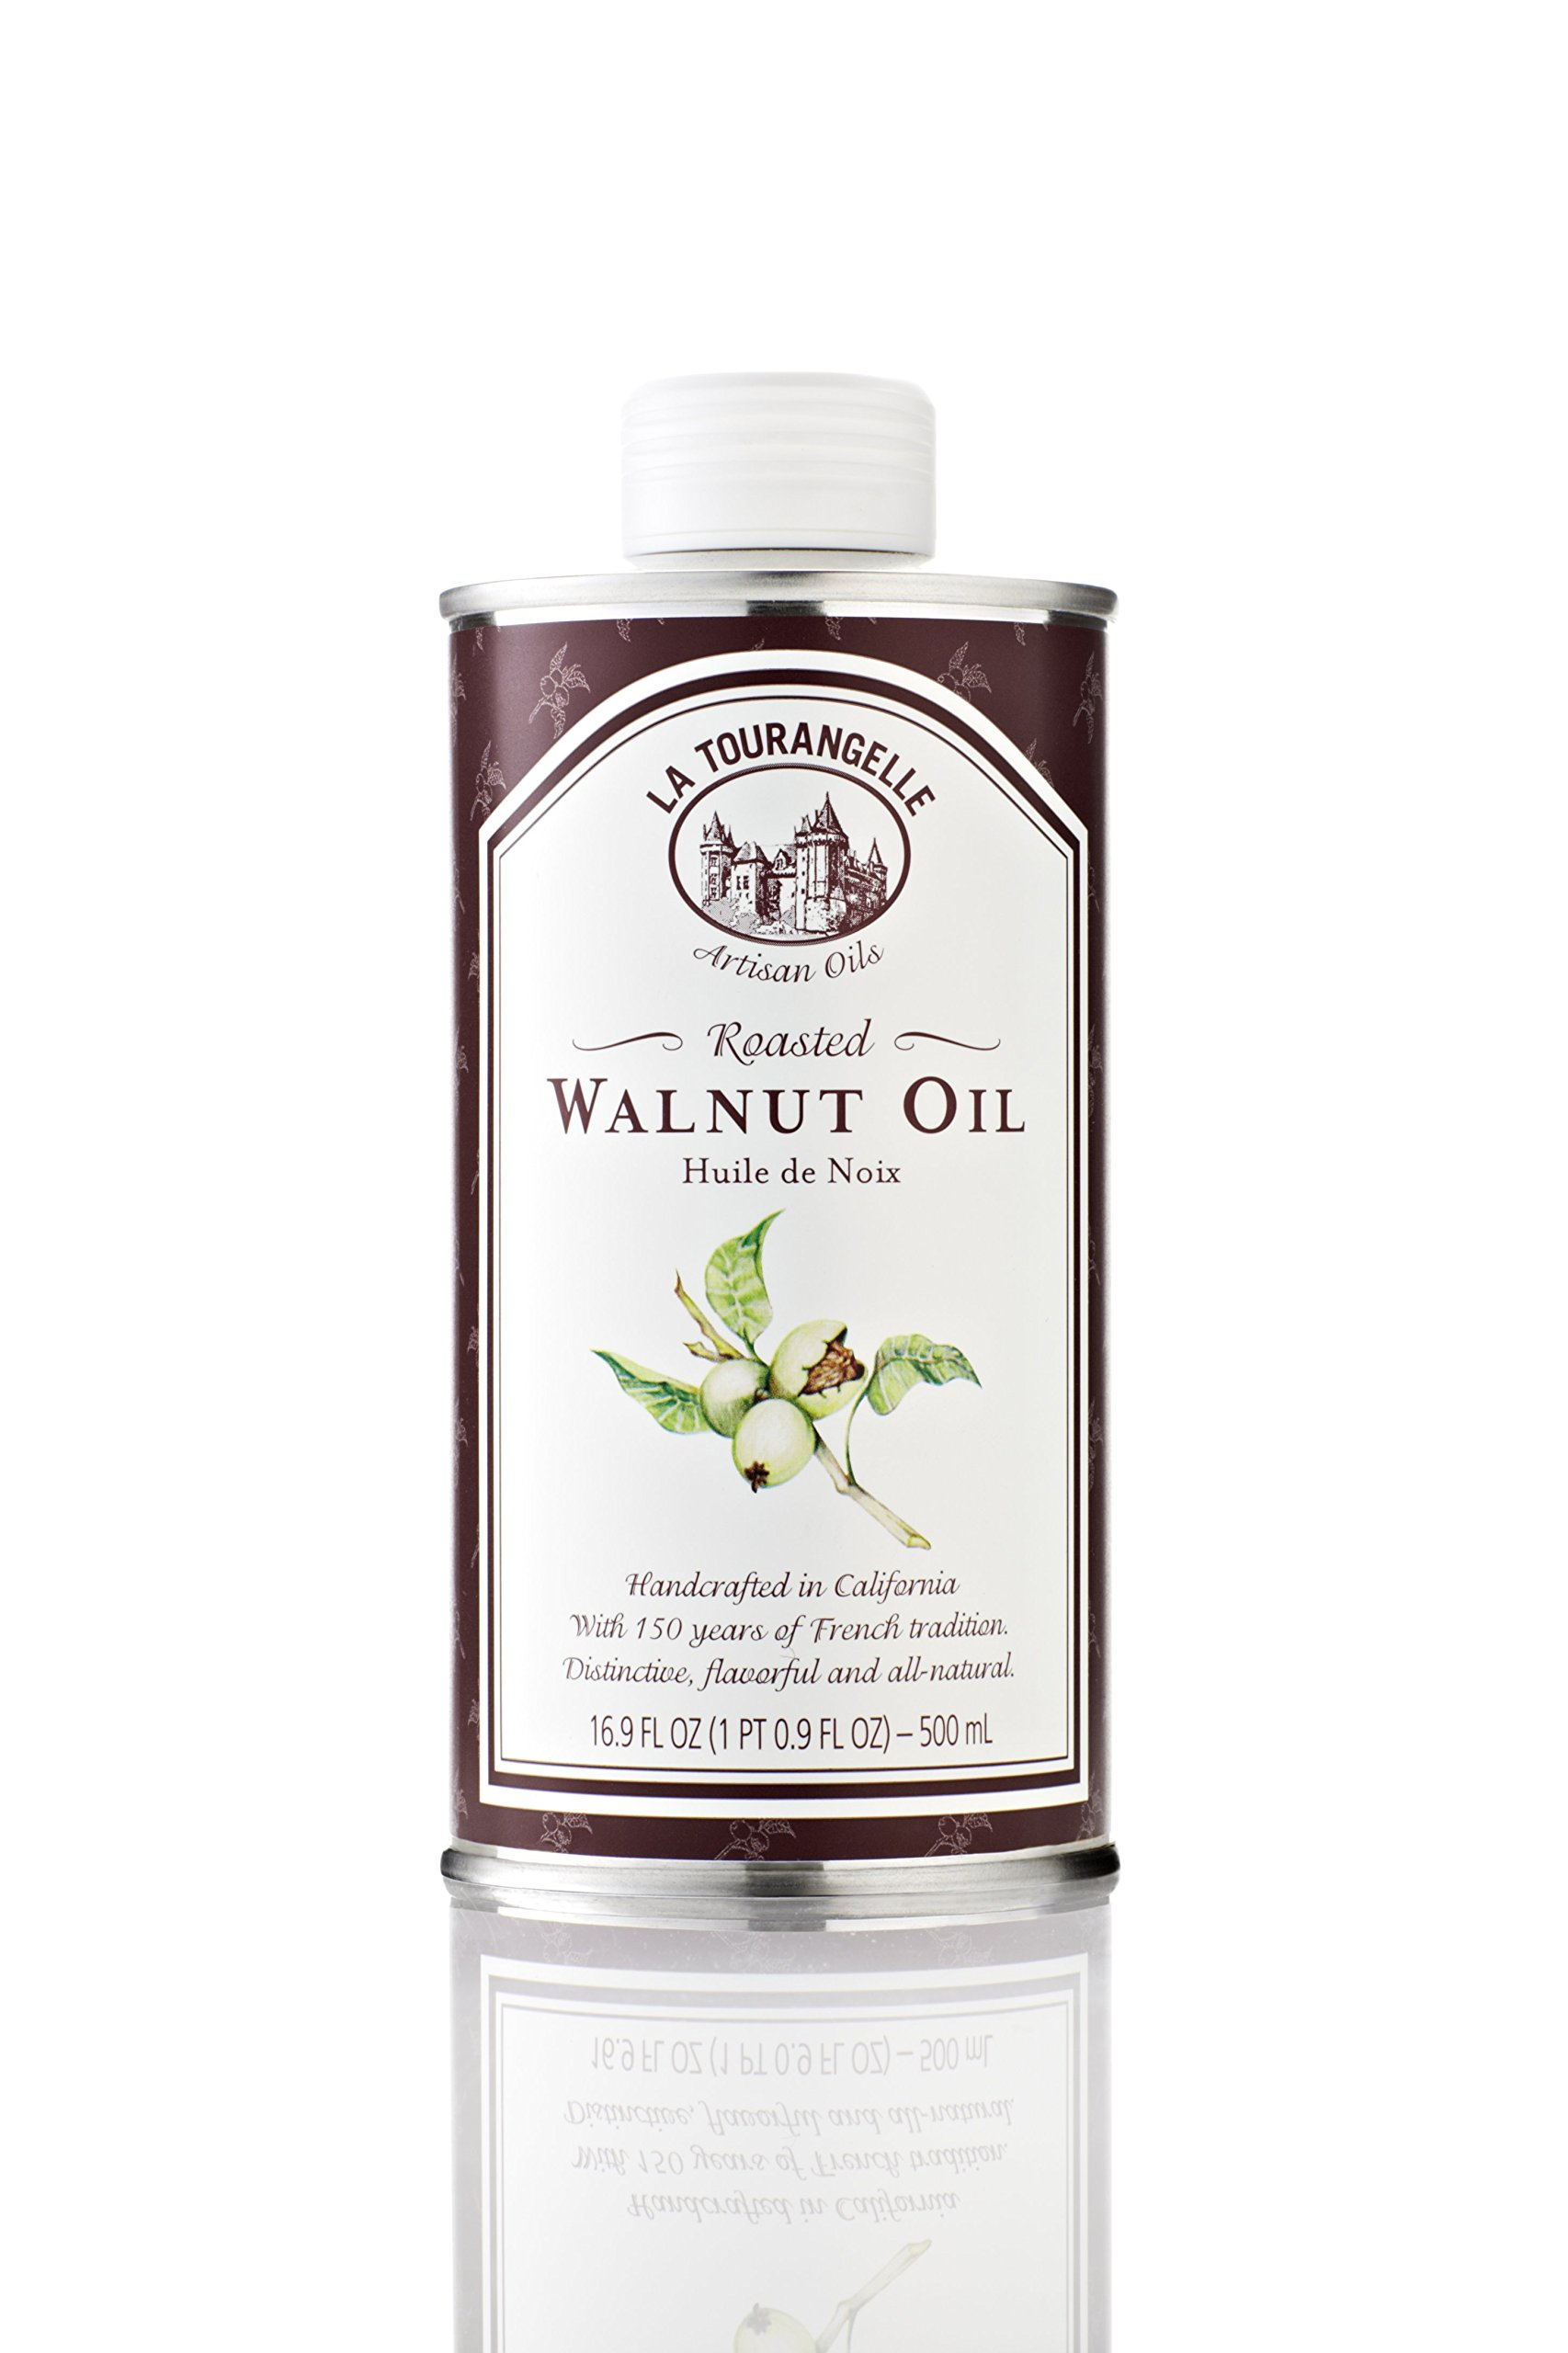 La Tourangelle Roasted Walnut Oil 16.9 Fl. Oz. Cans (Pack of 3), All-Natural, Artisanal, Great for Salads, Grilled Fish and Meat, or Pasta